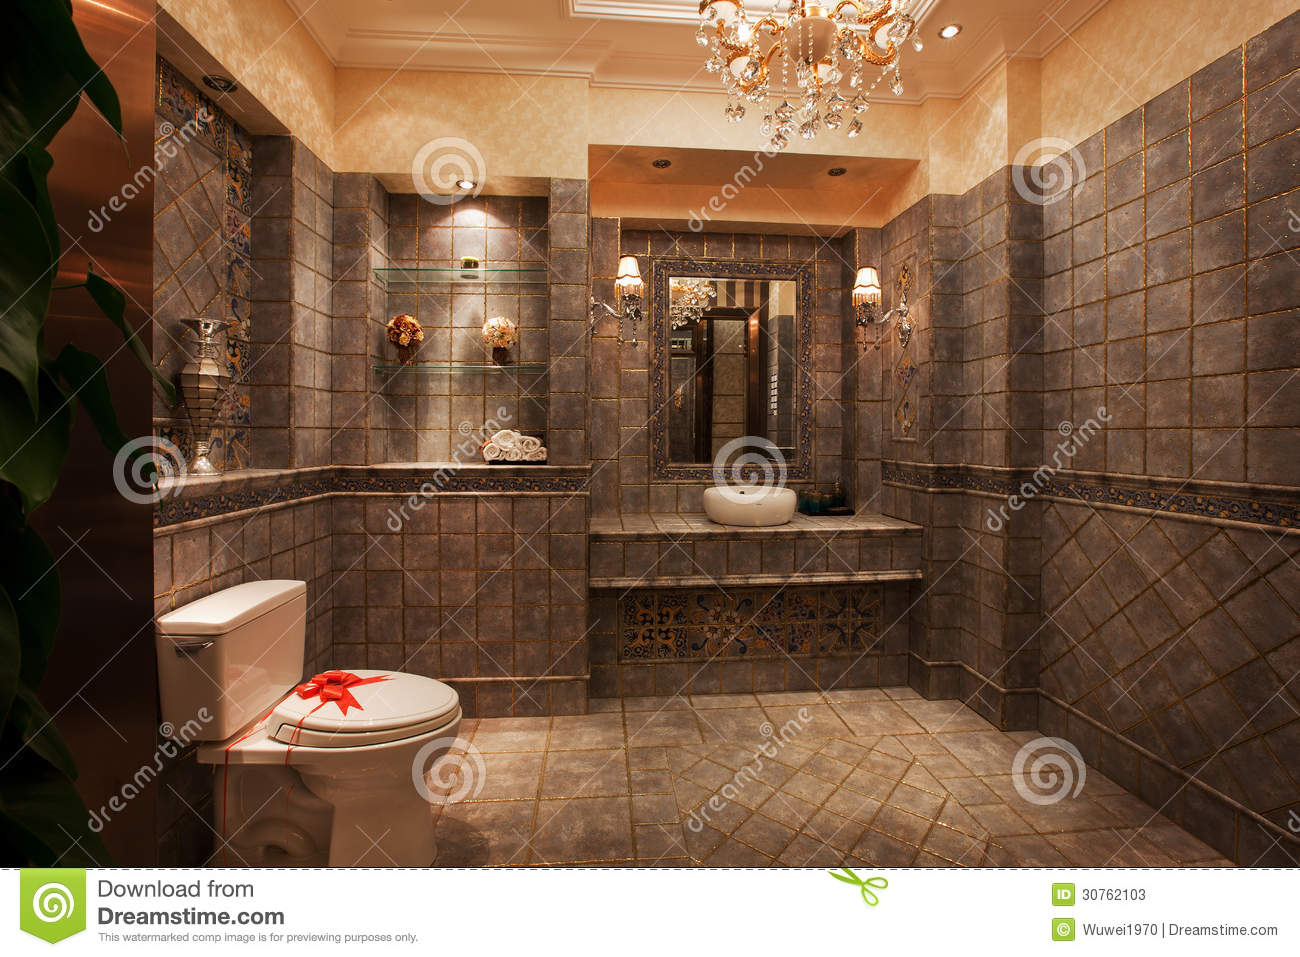 hotel bathroom design the toilet stock image image of nightstool closestool 12411